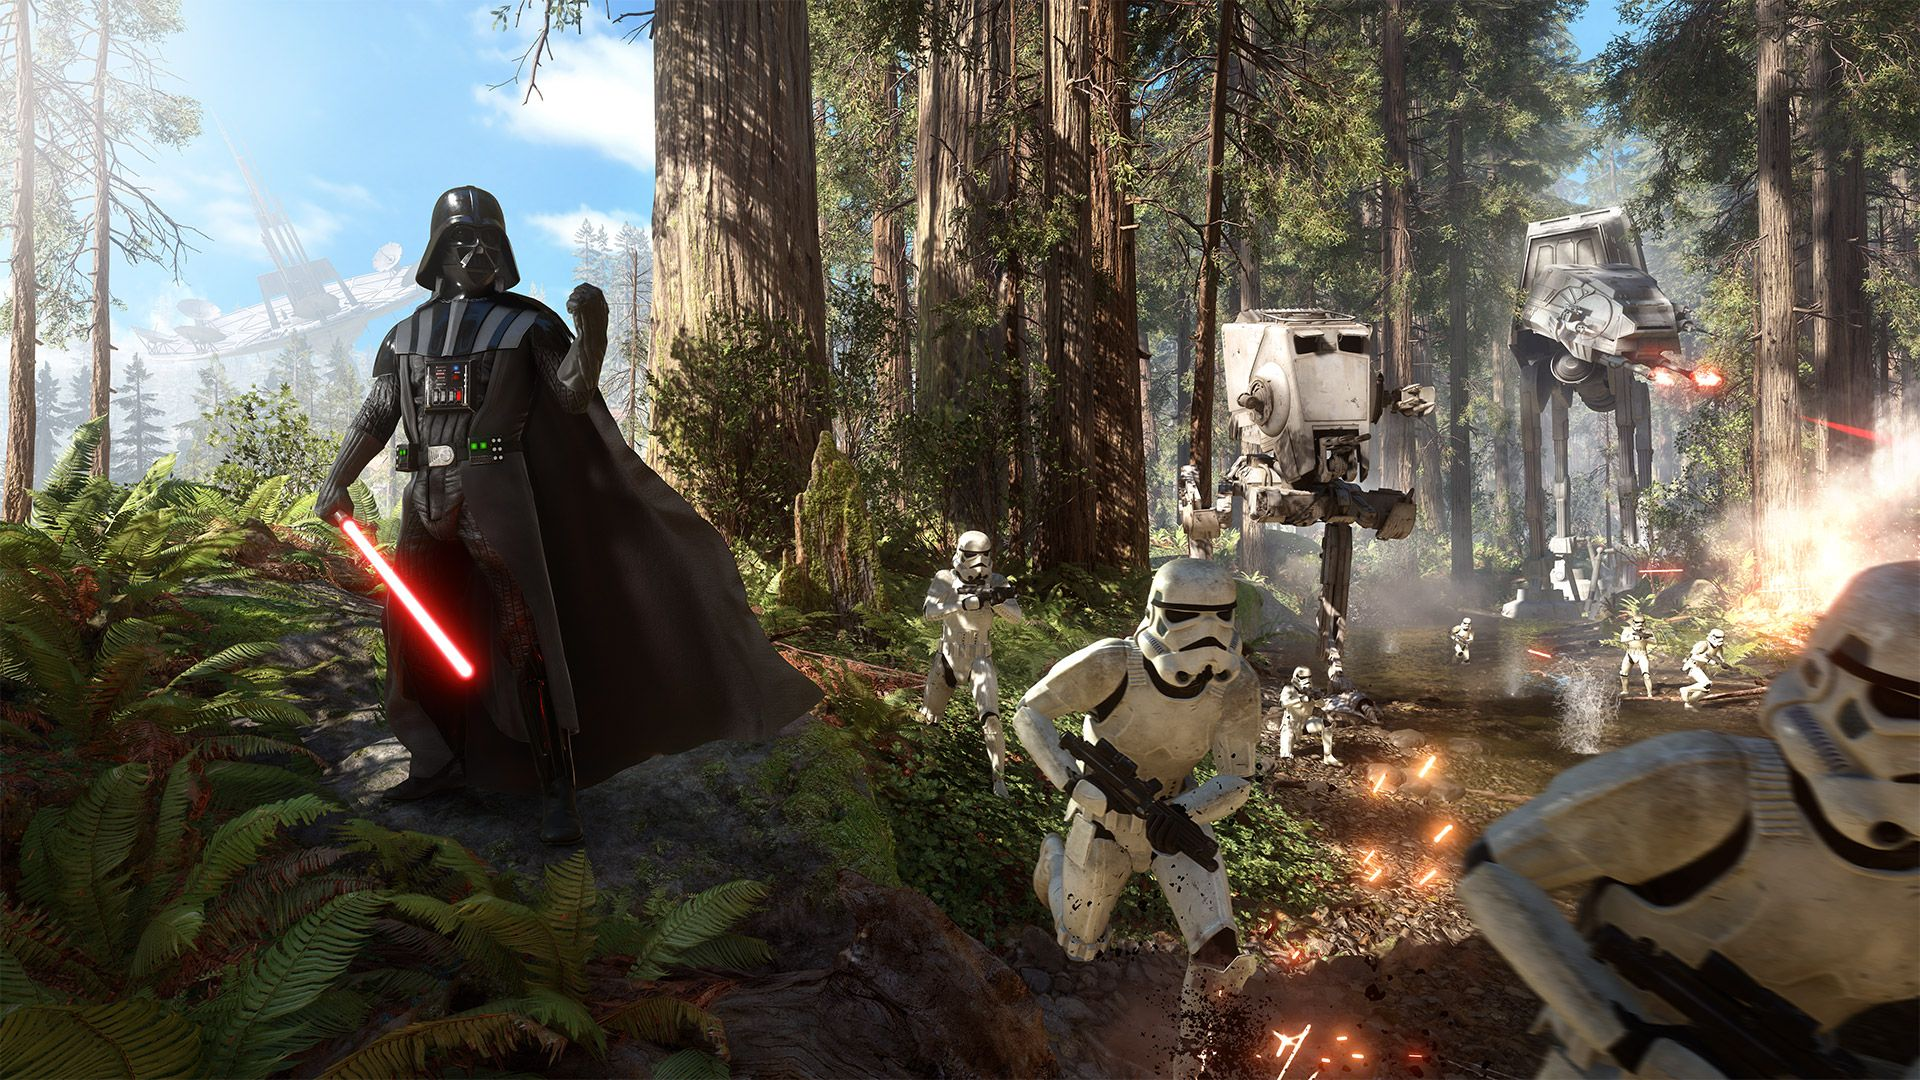 Star Wars Battlefront I, II, III: Star Wars: Battlefront 2 на Project Scorpio